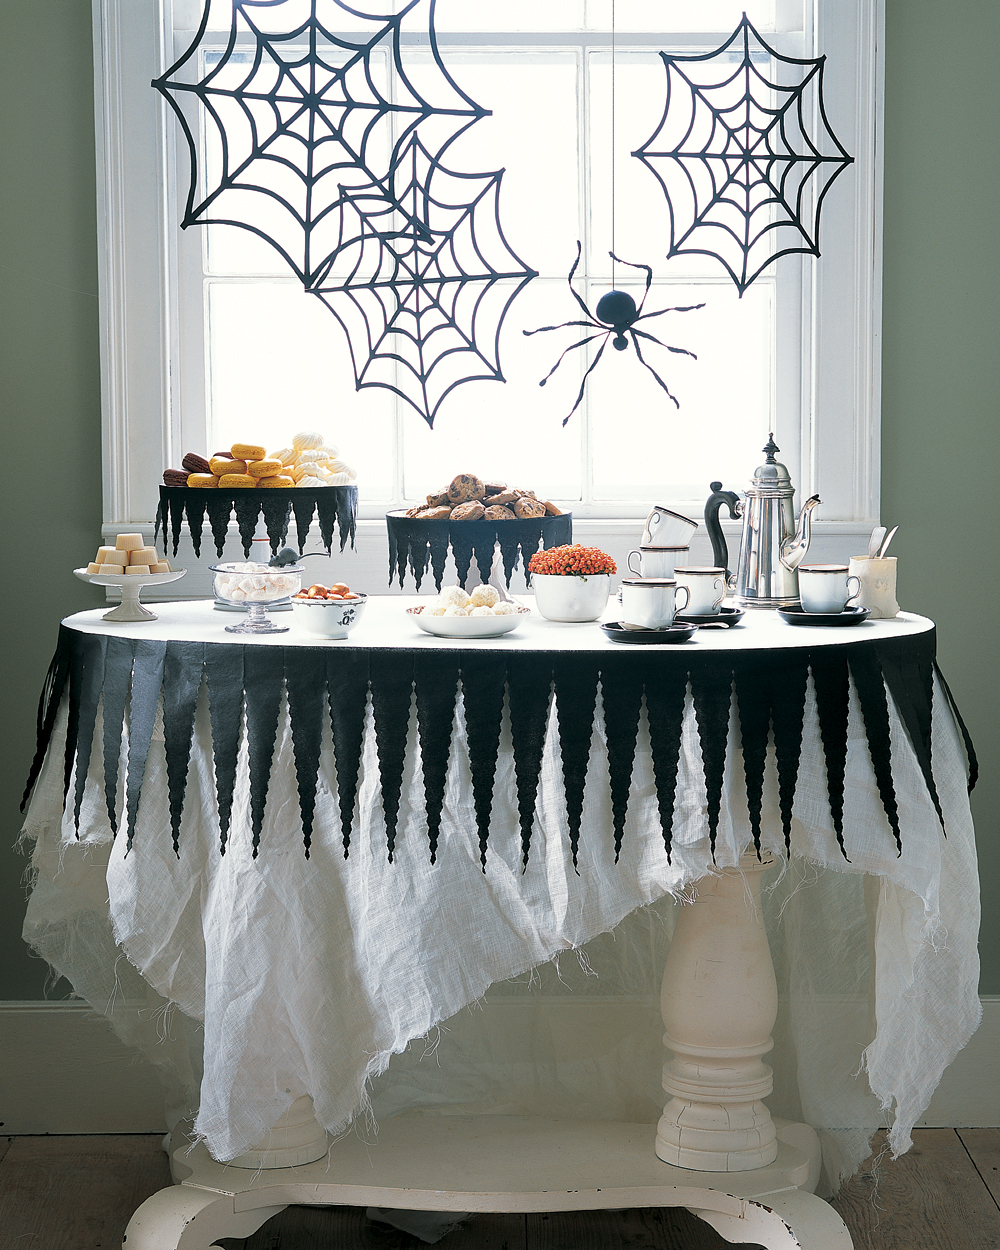 13 Creepy-Crawly Spider Crafts That Are Perfect for Halloween